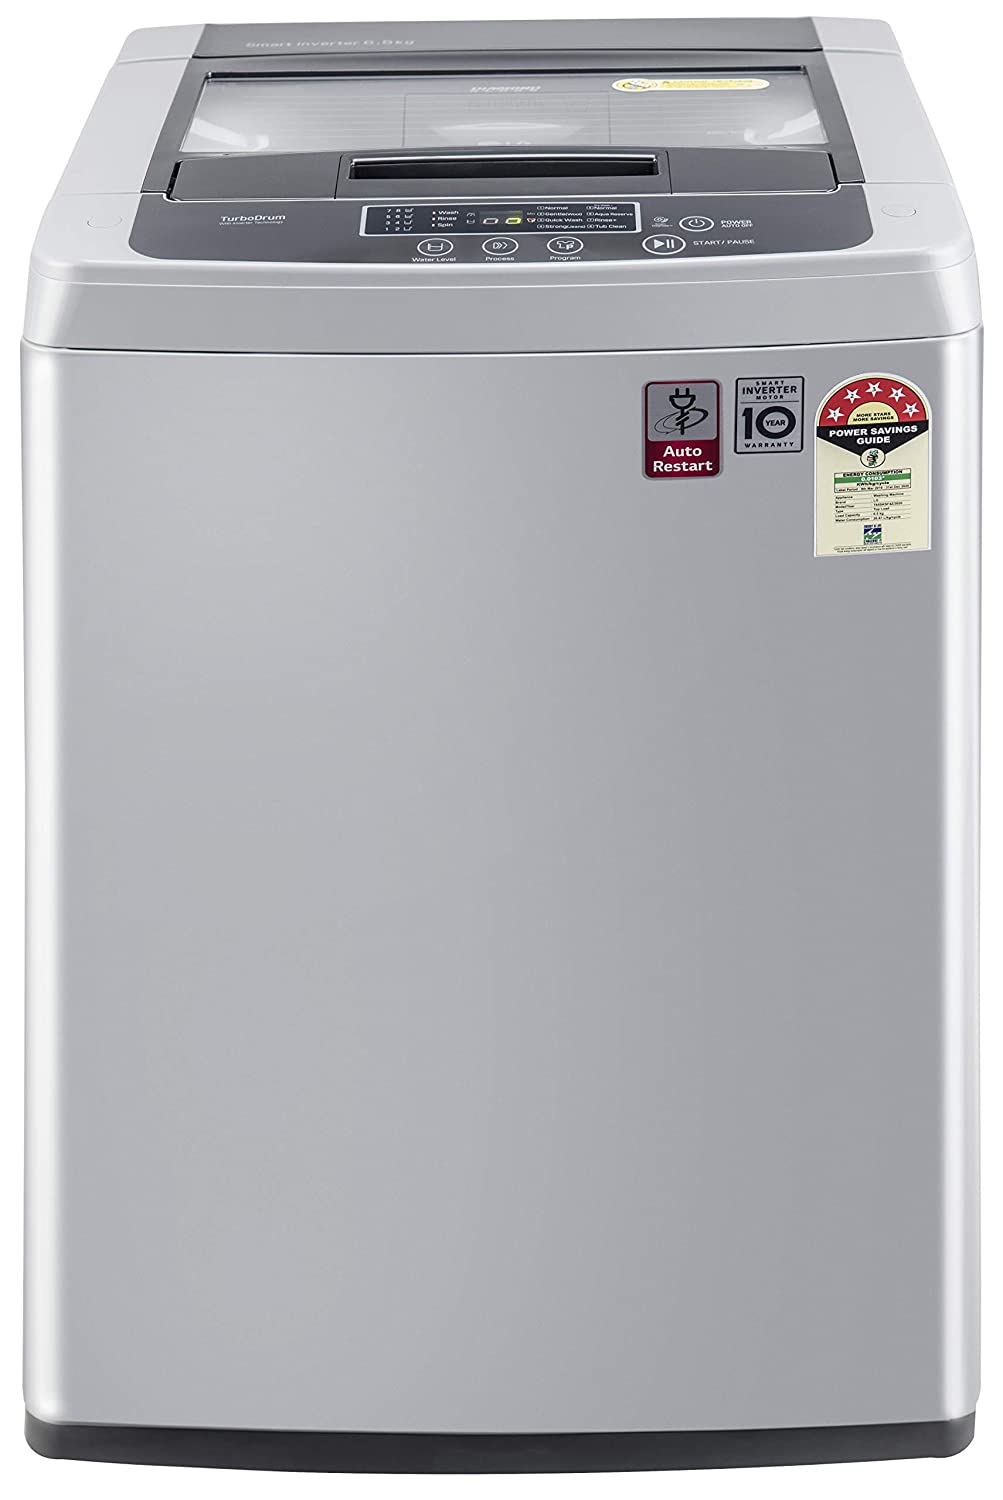 LG 6.5 Kg Fully Automatic <br>Top Load Washing Machine